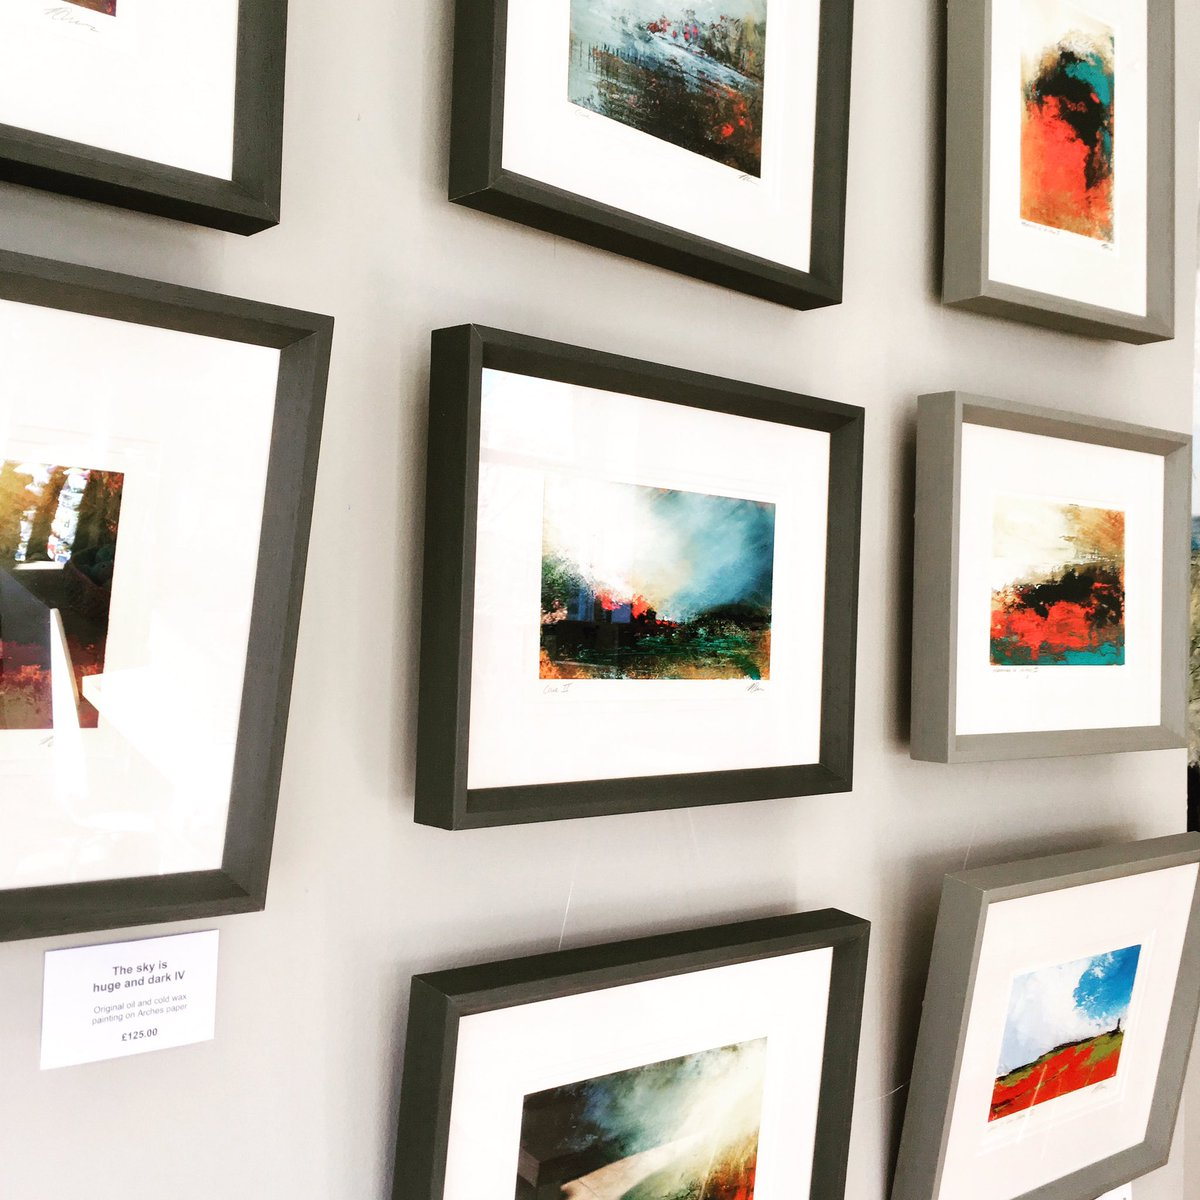 A wall full of stunning jewel colours and stormy skies - new original framed oil and cold wax work by @PaulaDunnArtist just arrived this afternoon ✨#oil #oilandcoldwax #oilandcoldwaxpainting #ownanoriginal #Saltaire